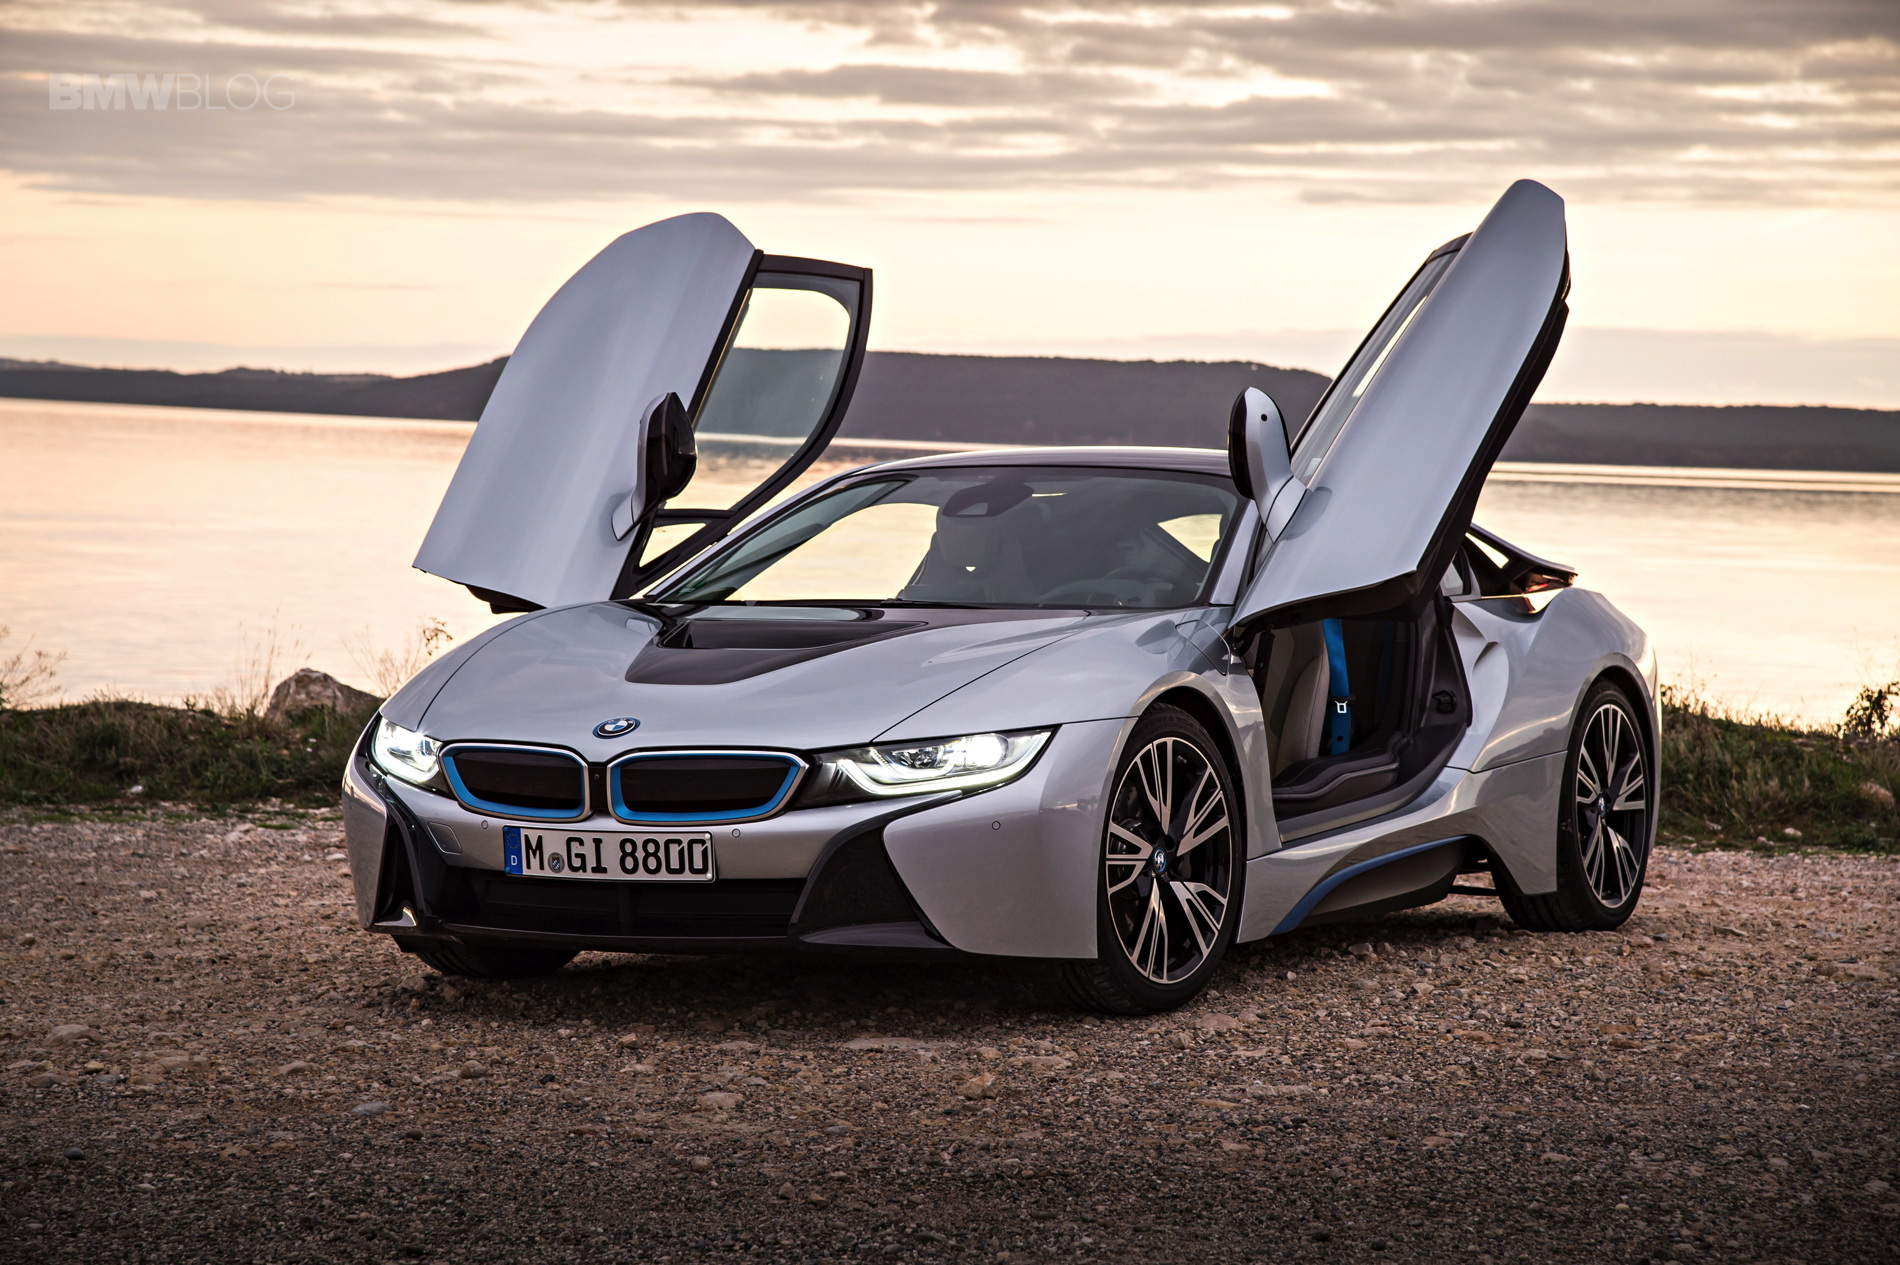 bmw i8 laser lights images 14